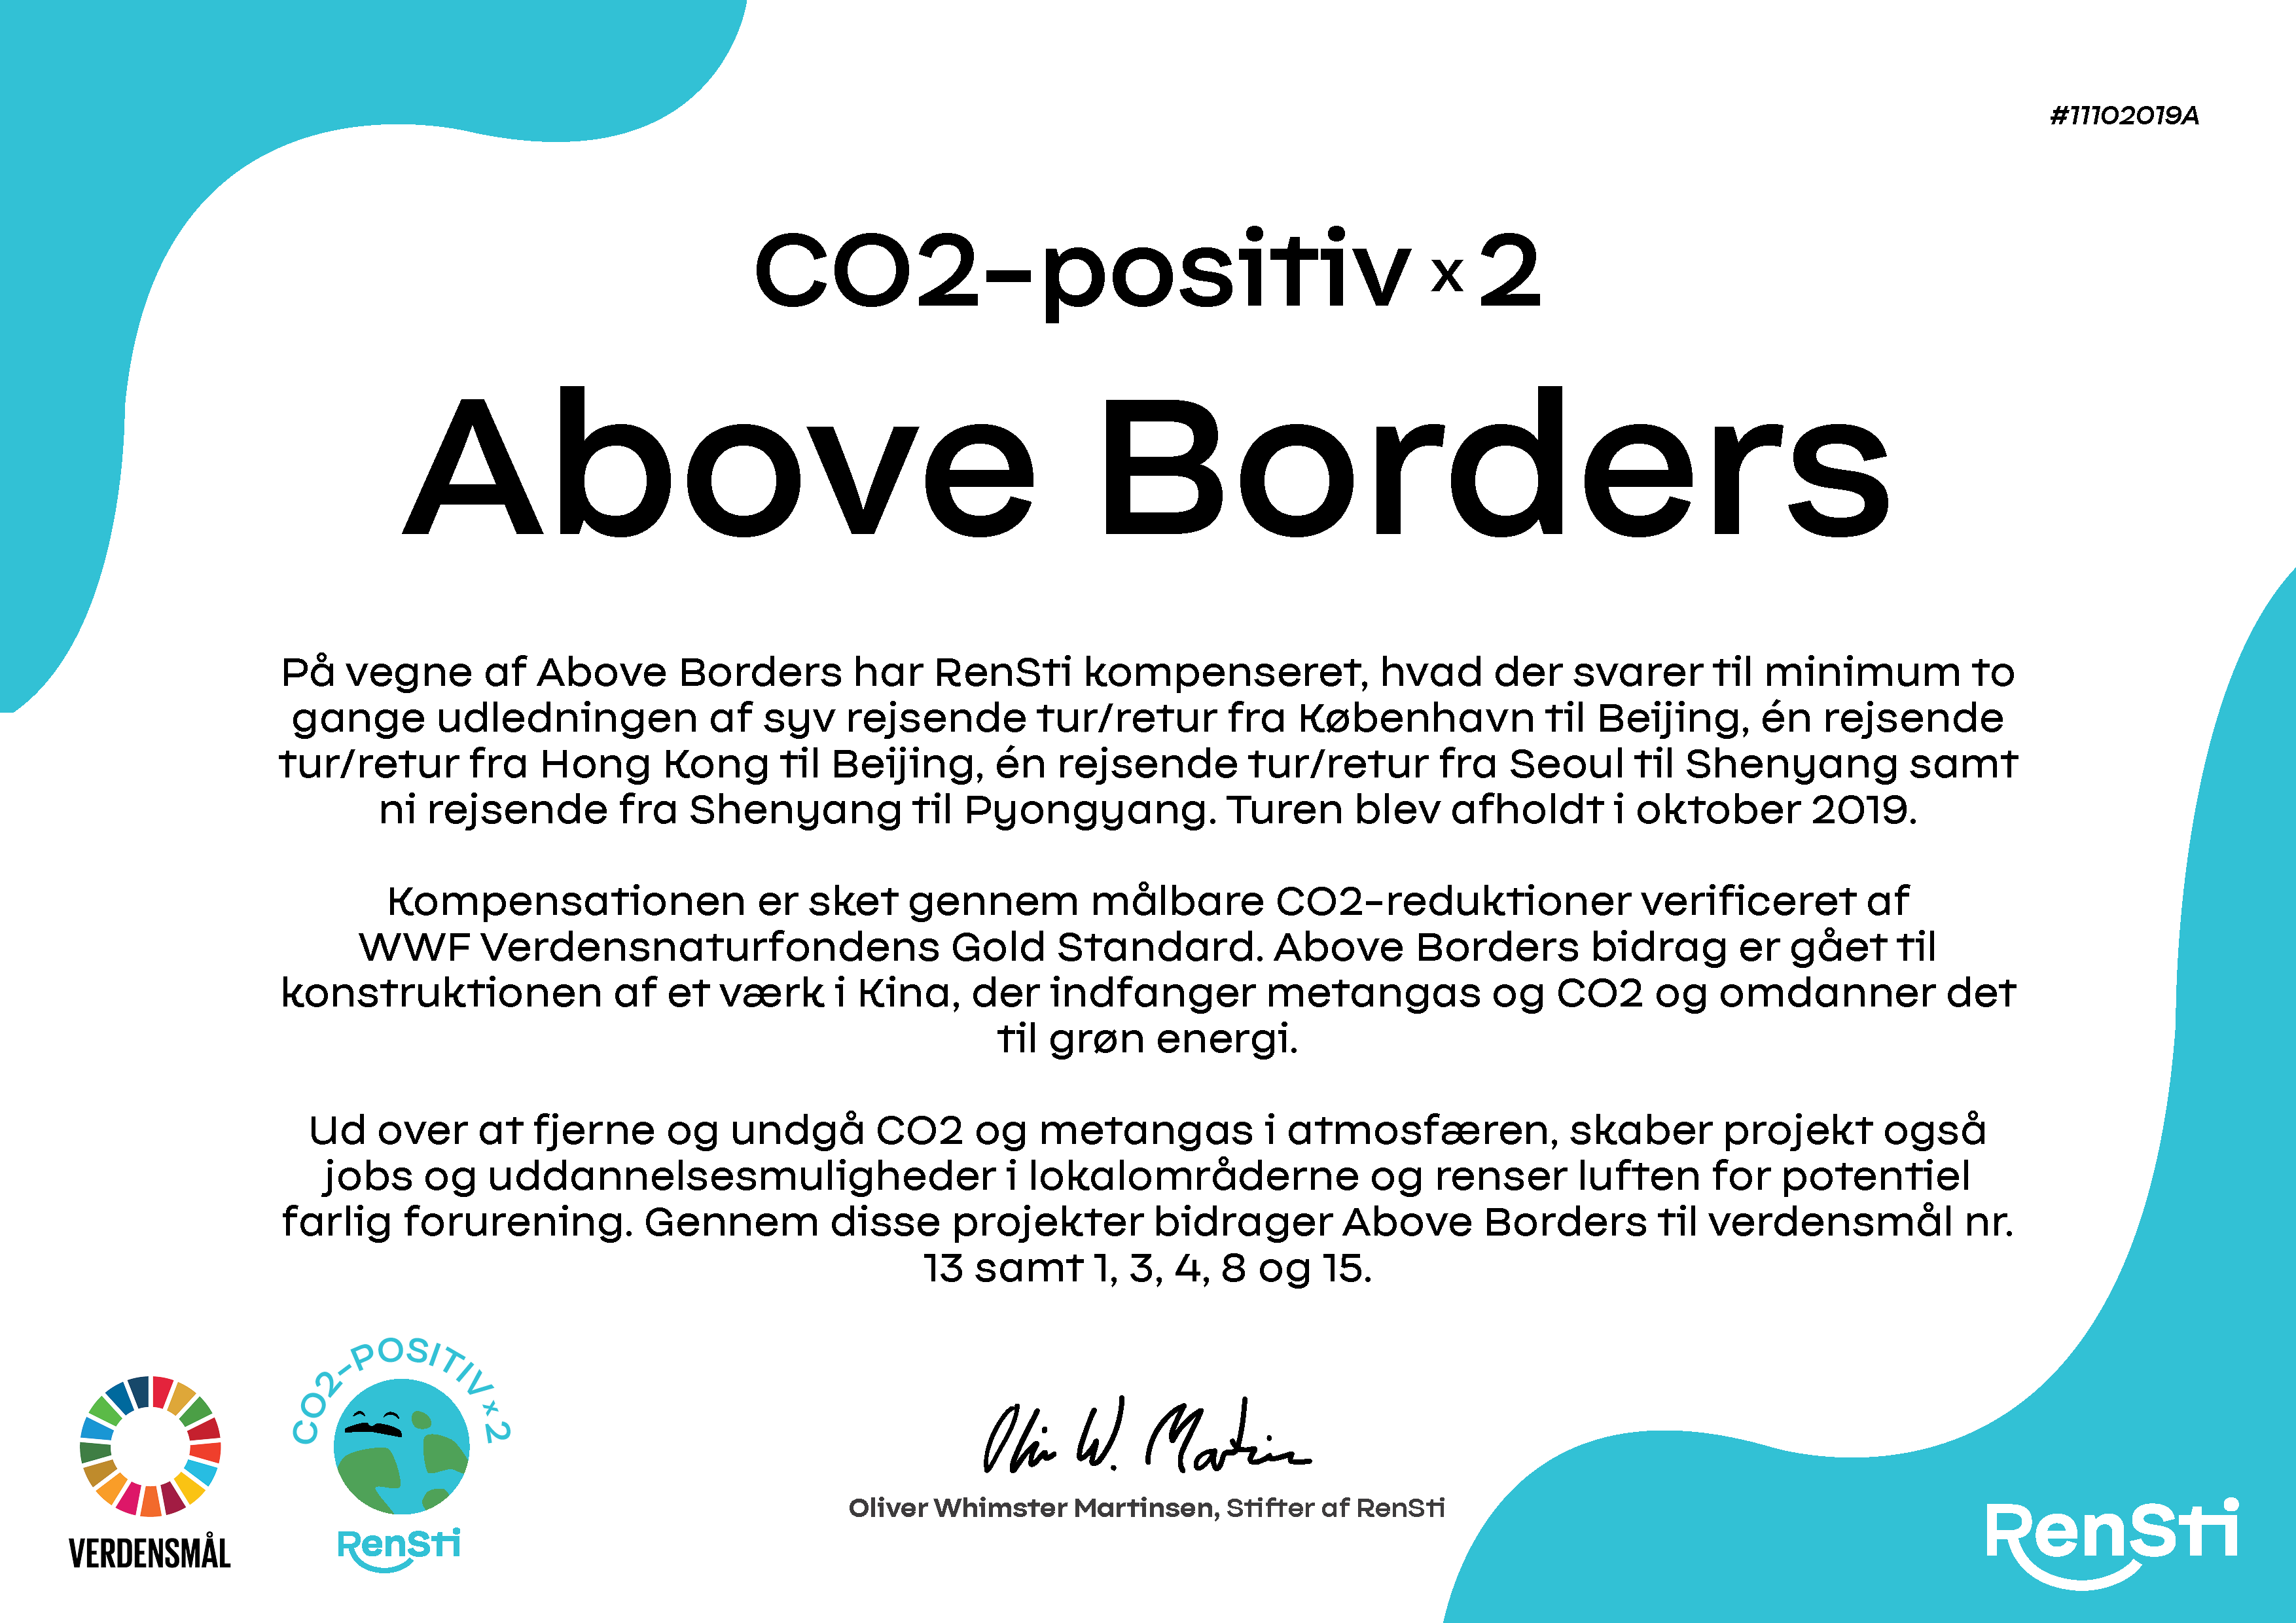 Above_Borders_11/10/19-Certifikat-RenSti